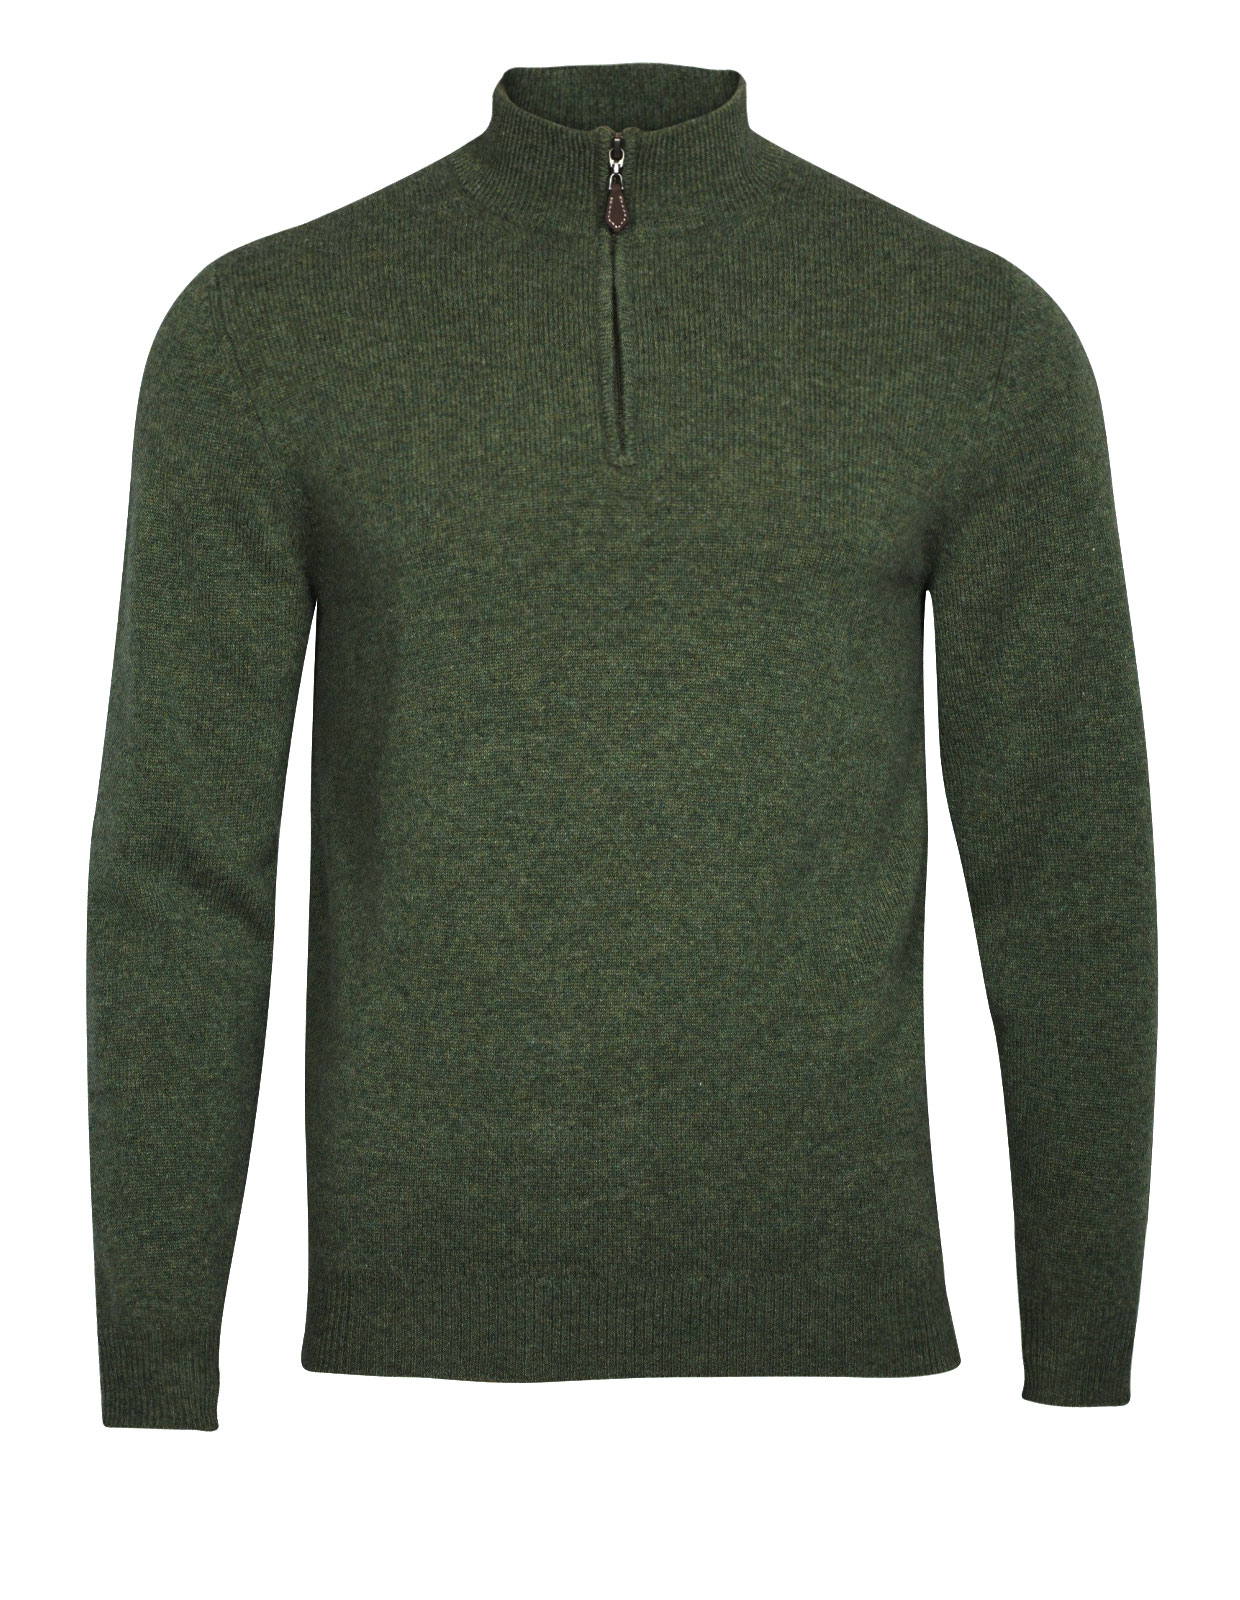 Sutherland Half Zip Mock Neck Jumper Rosemary